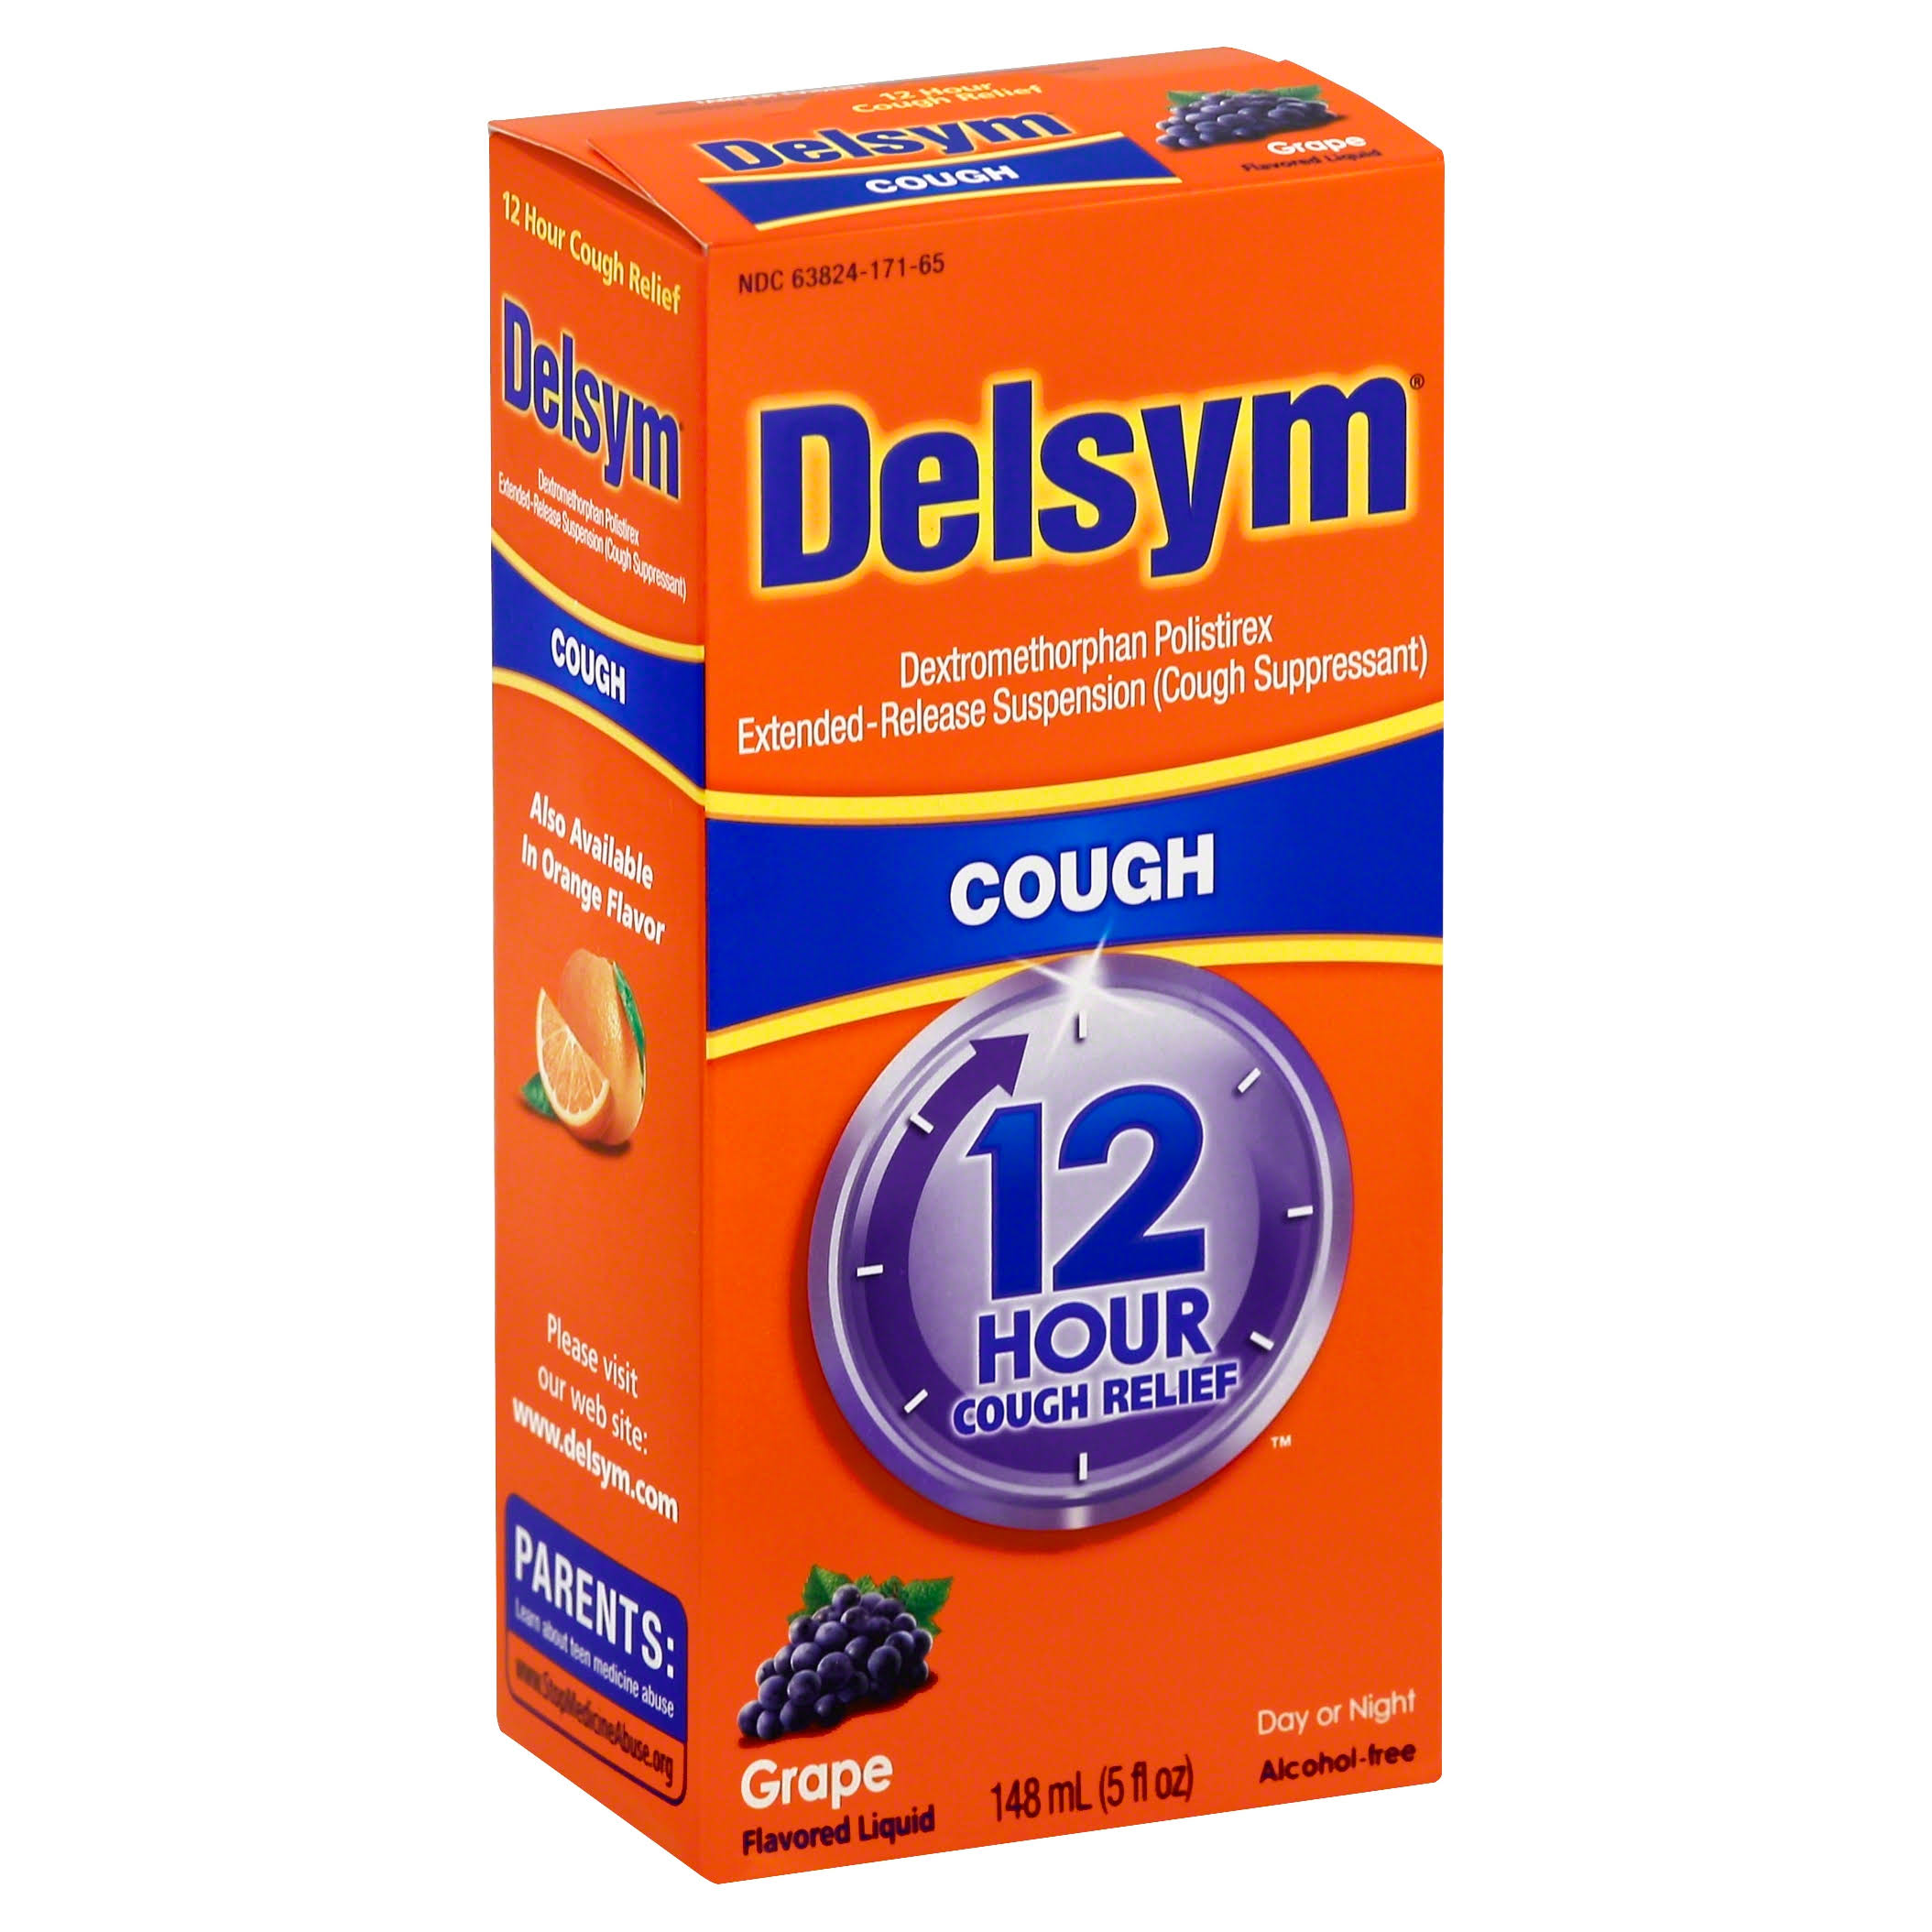 Delsym 12 Hour Day or Night Liquid Cough Relief - Grape Flavored, 5 fl oz